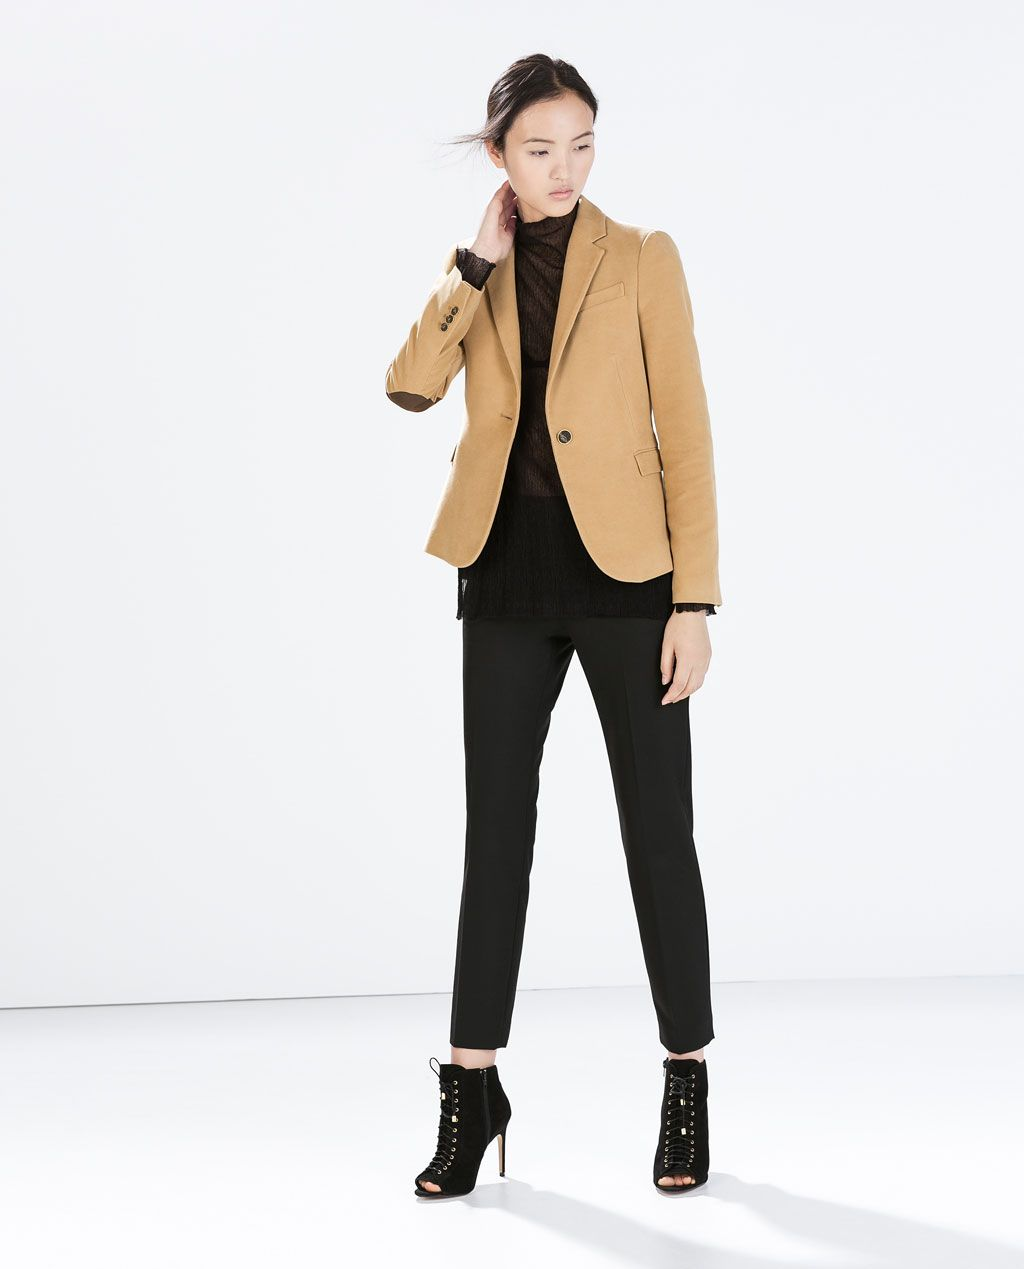 0cbf5ba3e8 BLAZER WITH ELBOW PATCHES from Zara | A T T I R E in 2019 | Camel ...